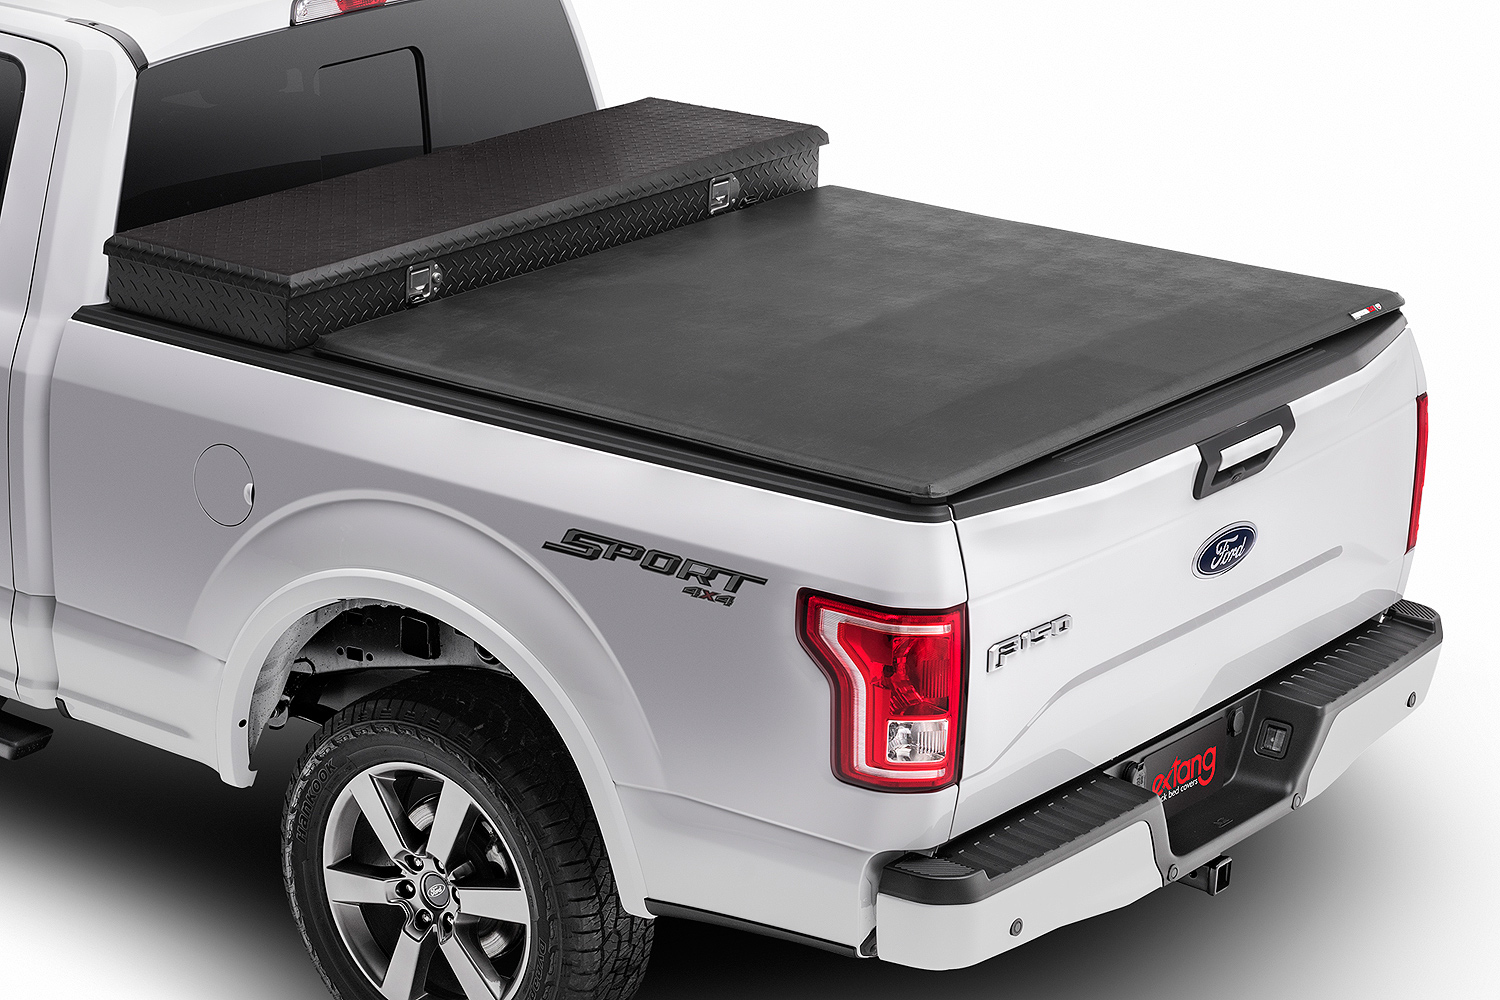 Service Truck Tool Box >> Extang Trifecta 2.0 Tool Box Tonneau Cover - Toolbox Truck Bed Cover